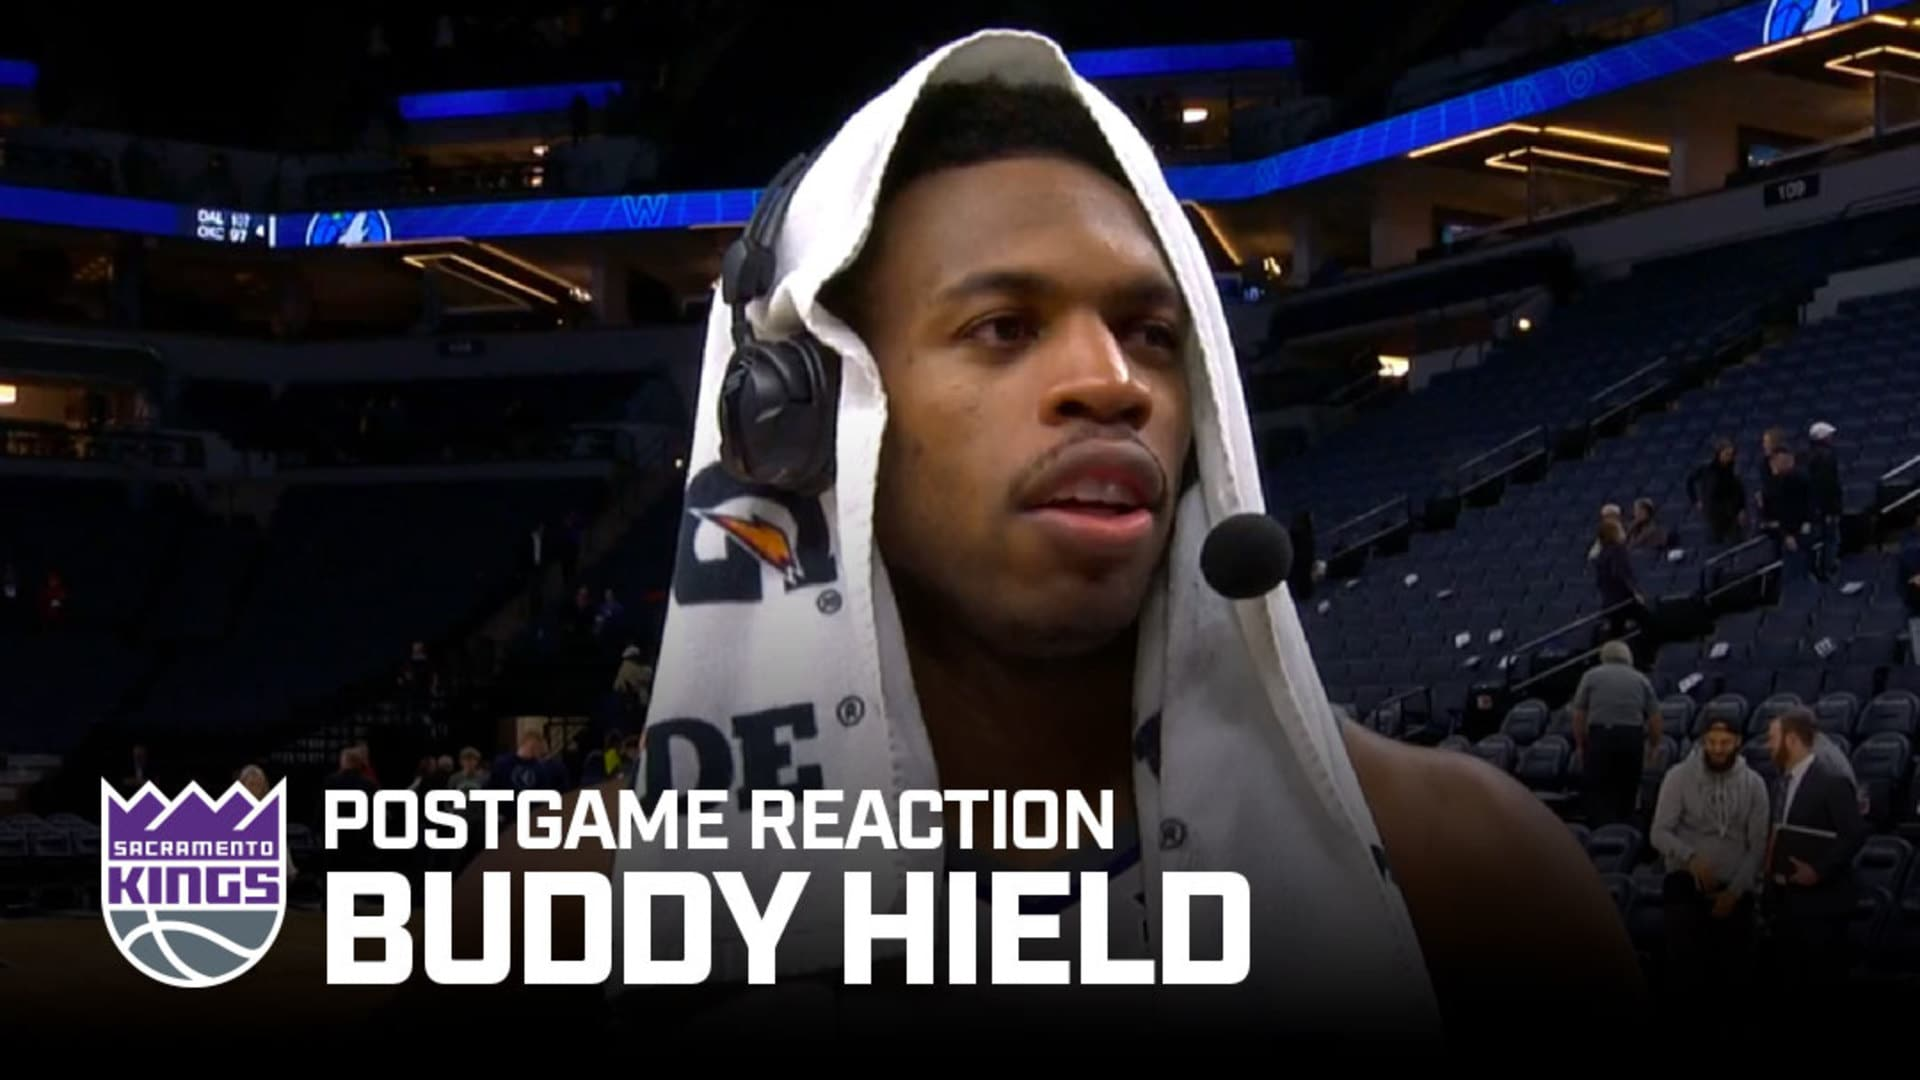 'It Was All for Kobe' | Buddy Hield Postgame Interview 1.27.20